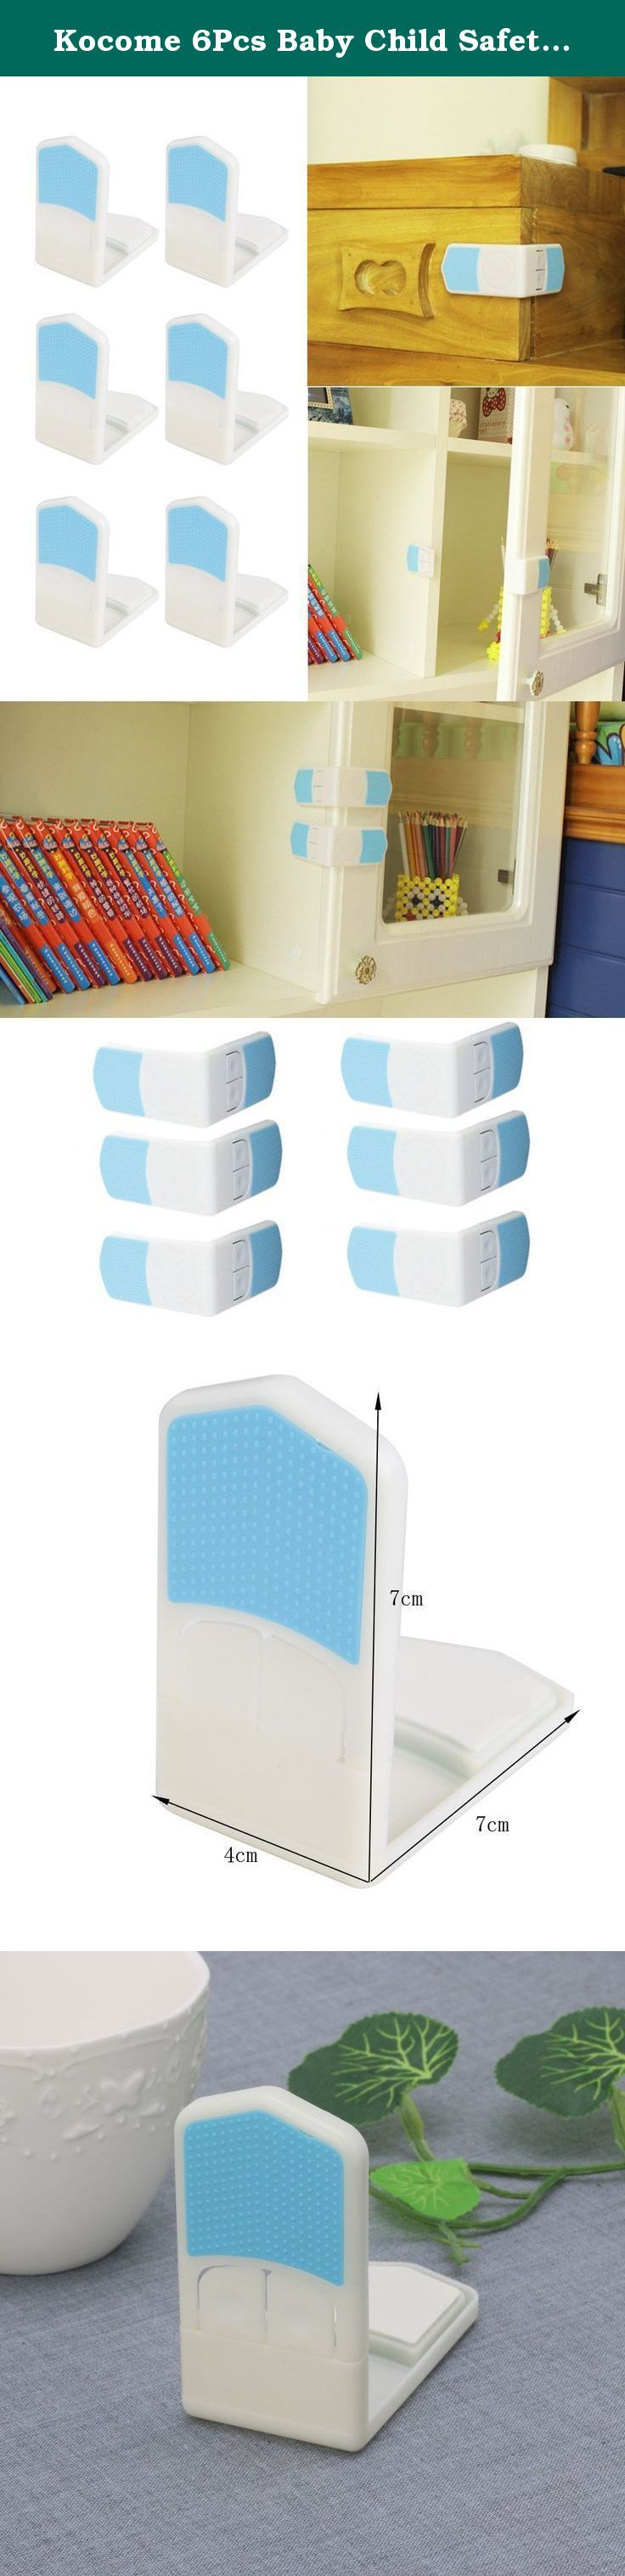 Kocome 6Pcs Baby Child Safety Locking Plastic Cabinet Drawer Bathroom Door Protection. 100% brand new and high quality Features: You can prevent the baby free to open the door, grind your fingers, damage to the cabinet items or items falling hurt baby Can be used for refrigerators, washing machines / dry cleaning machines, chest of drawers, dishwashers and other supplies equipment to prevent the baby opened, eating or messing up the items inside to avoid accidents Specifications:...